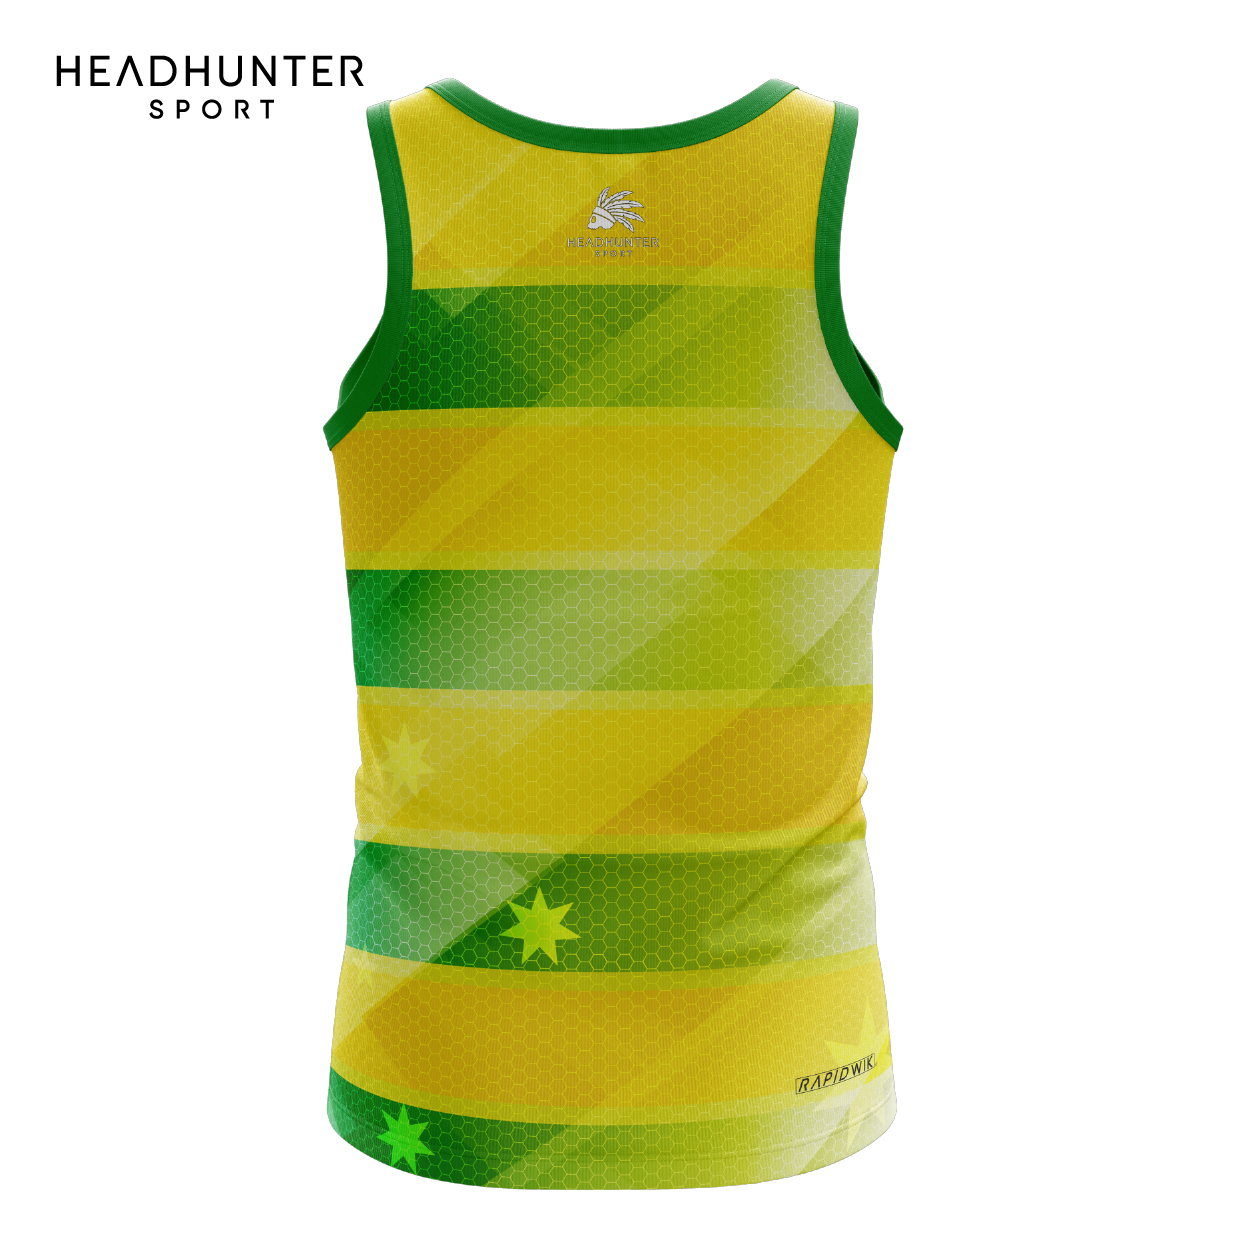 HSBC RUGBY 7S SERIES SINGAPORE 2019 MERCHANDISE AUSTRALIA SINGLET